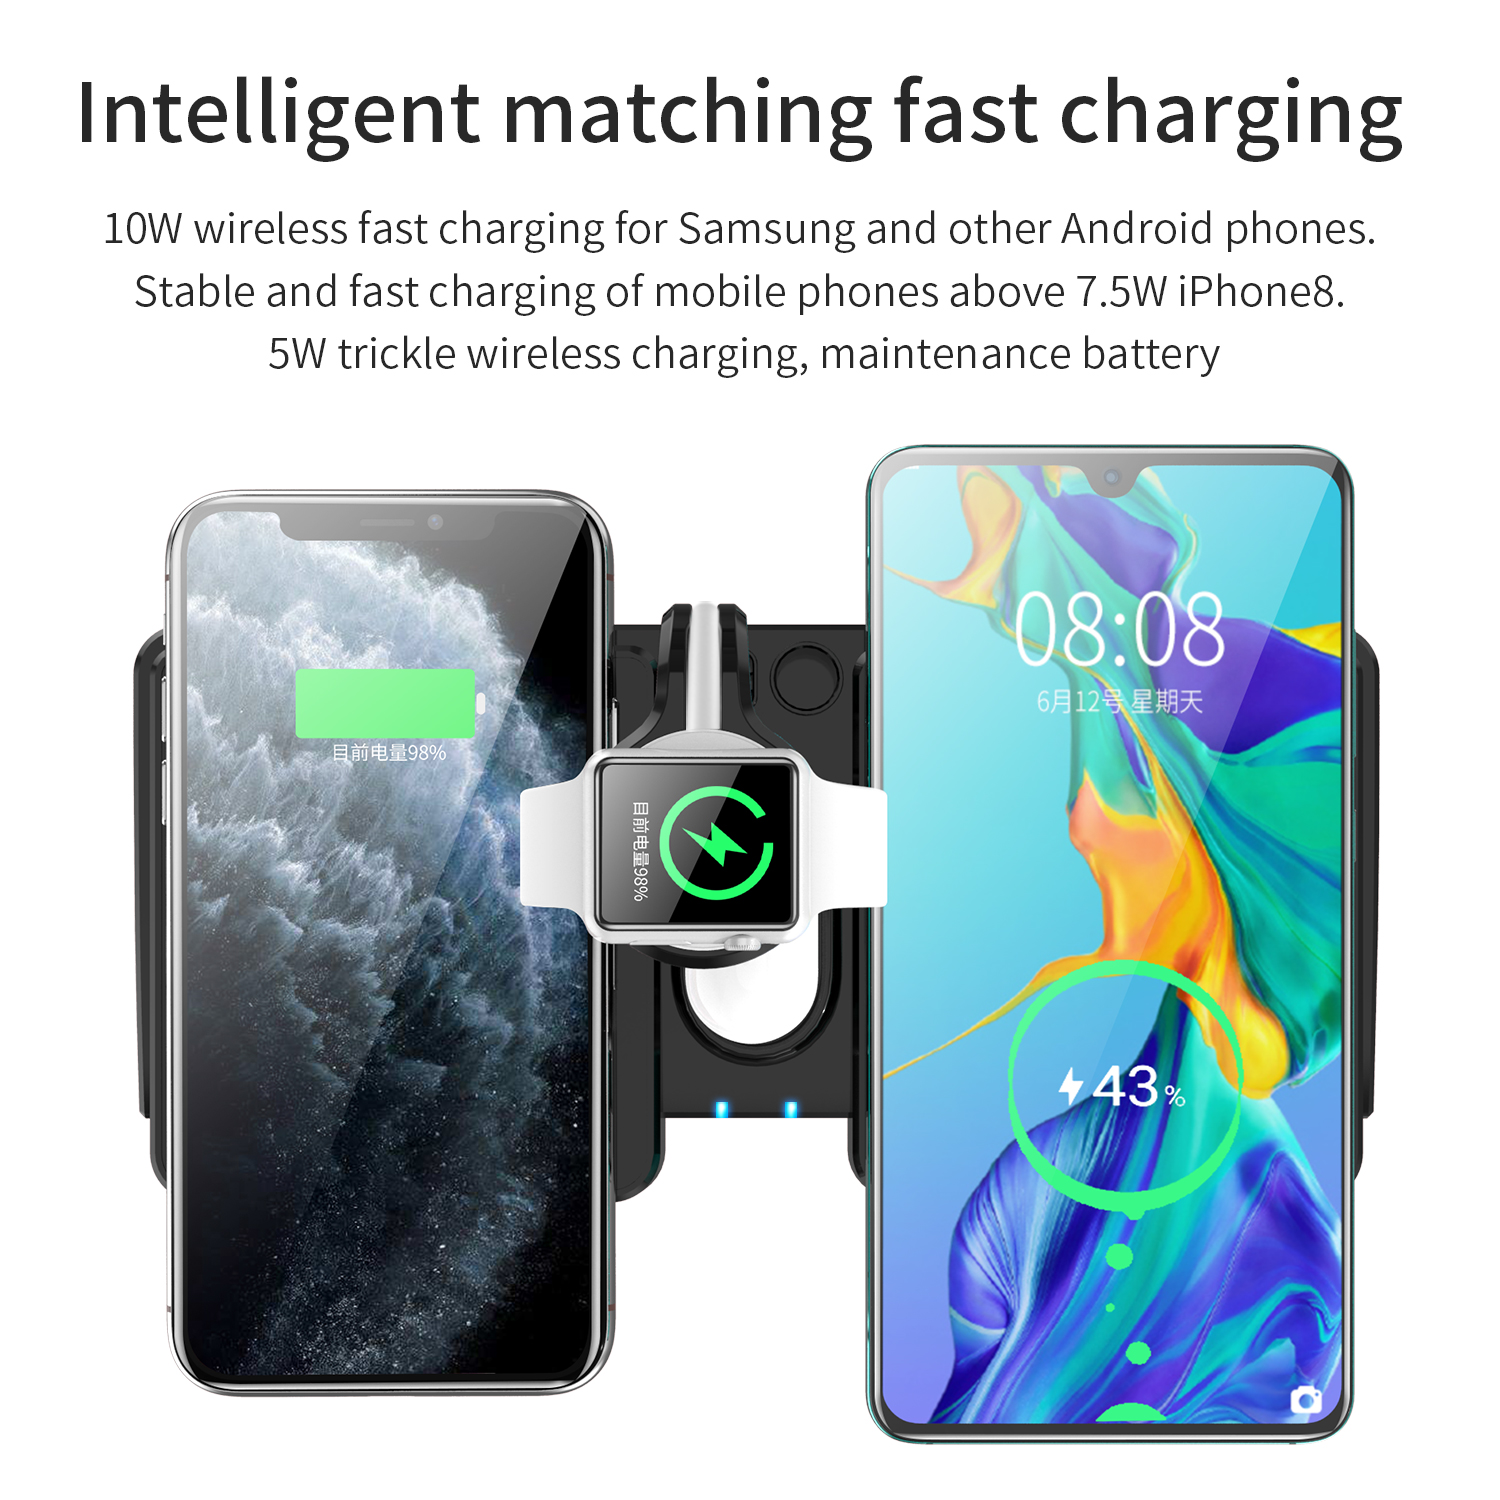 wireless charger for Apple Watch iWatch 5 4 3 2 1, Airpods,iPhone 11 11 Pro X Xs XR Max 8 Plus 8,Samsung Galaxy S9 S8